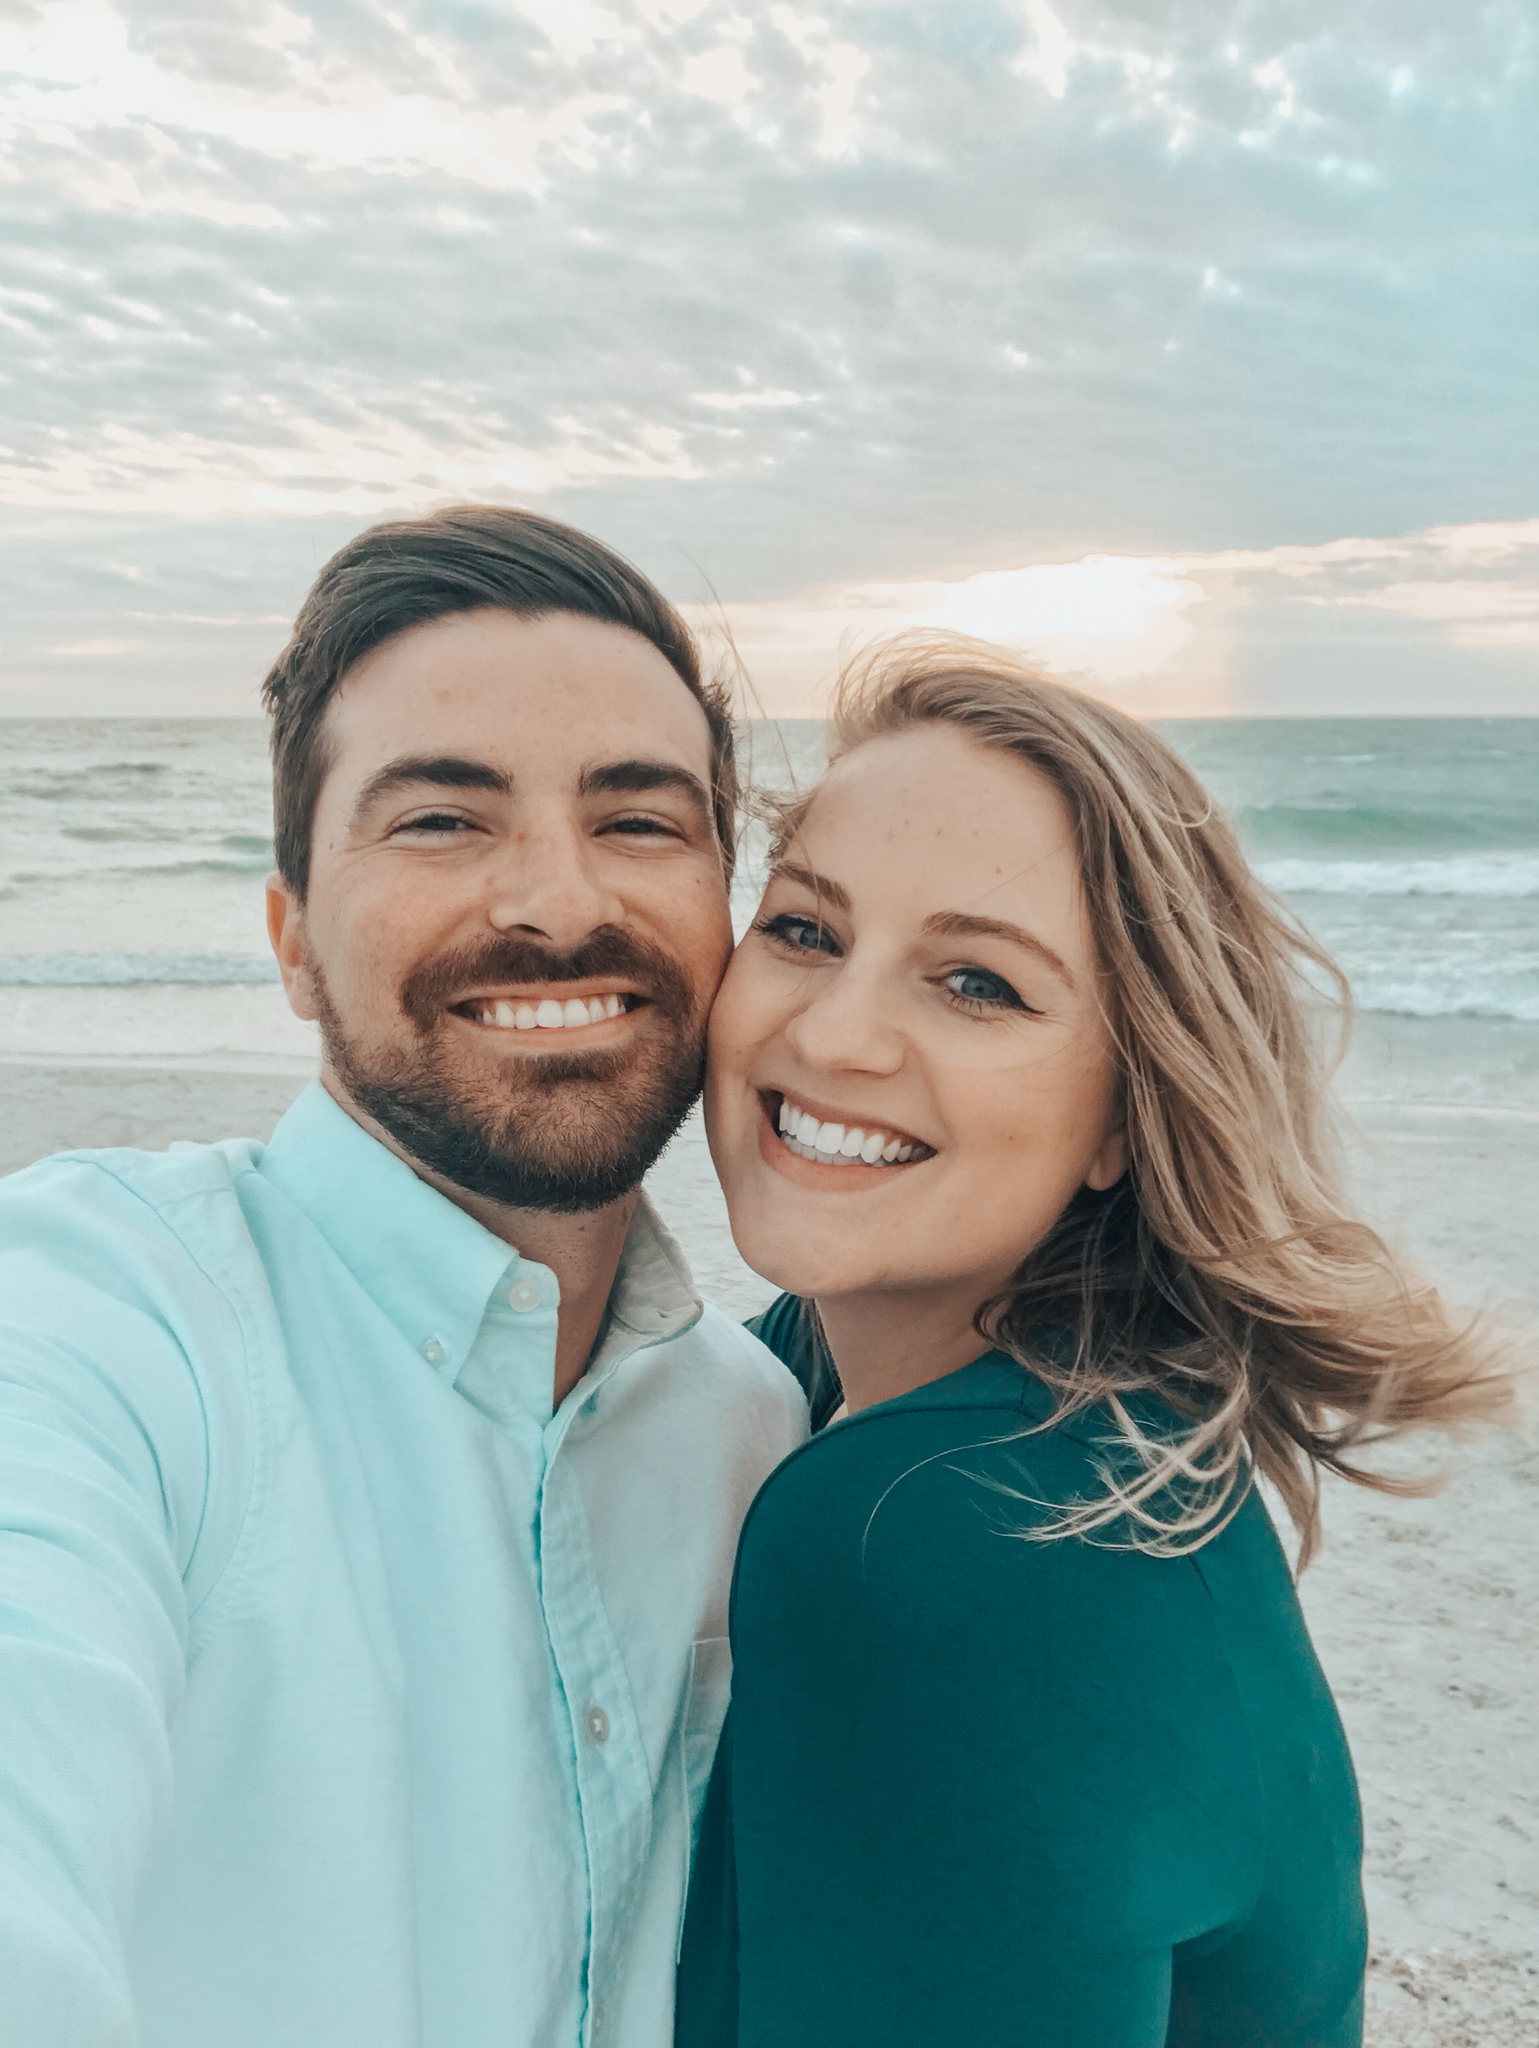 NICK MYERS - Meet Victoria's husband, Nick! You rarely see him, but he supports both businesses behind the scenes with IT, podcast editing and more. He also works with Victoria to create the imagery for Victoria Myers.